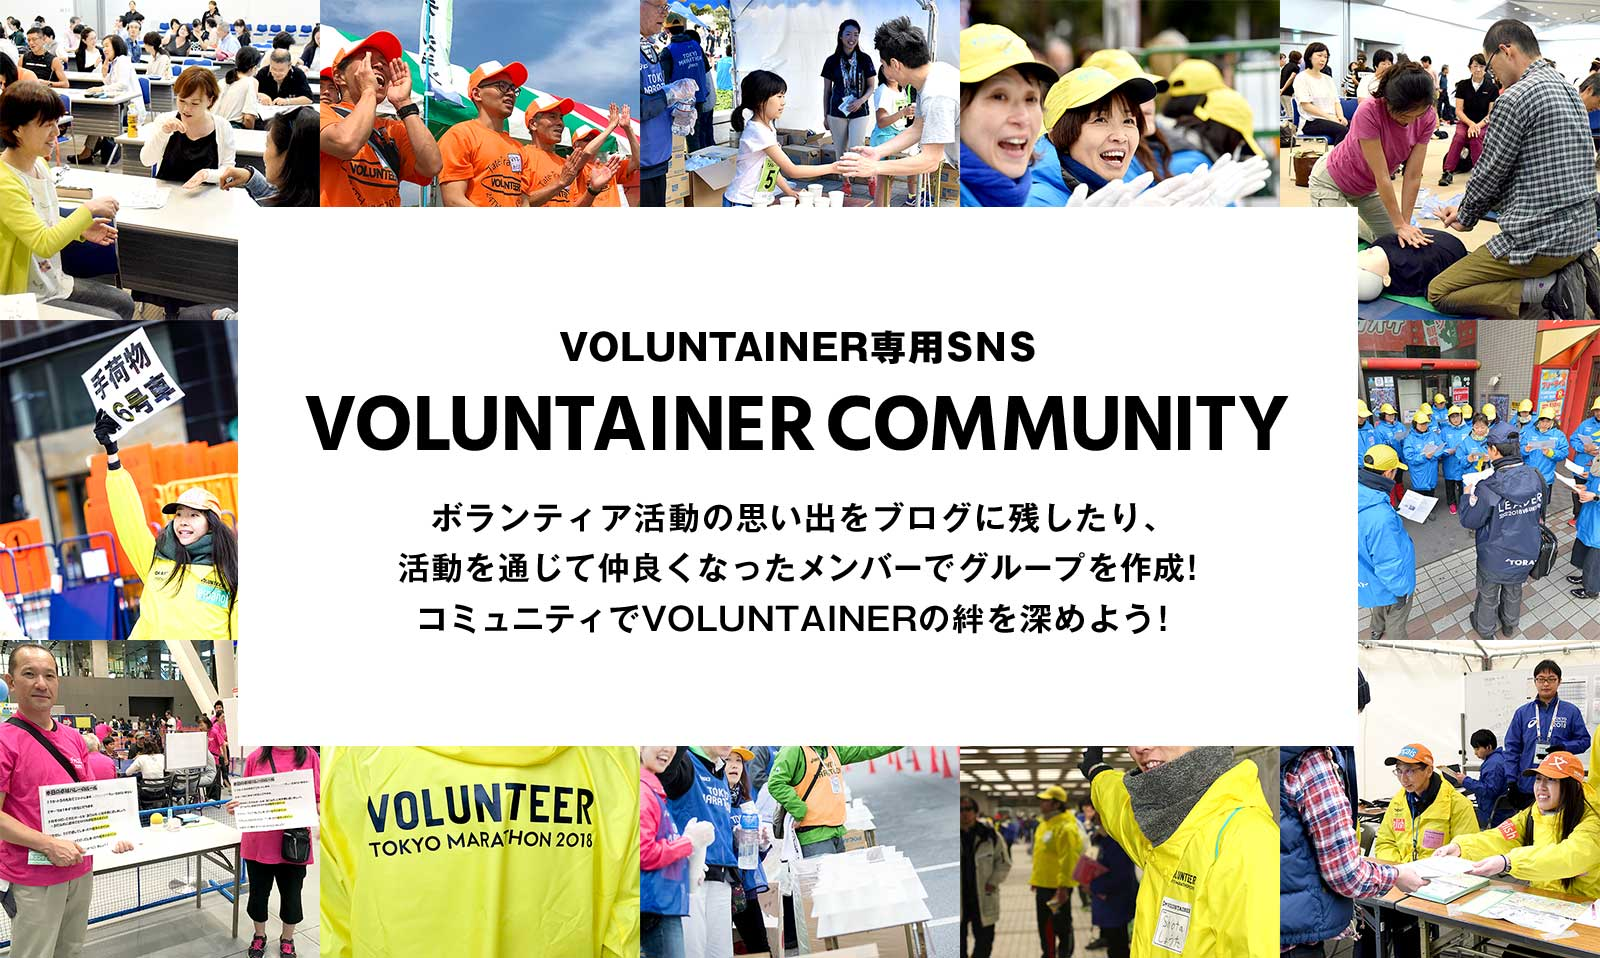 VOLUNTAINER COMMUNITY START!!